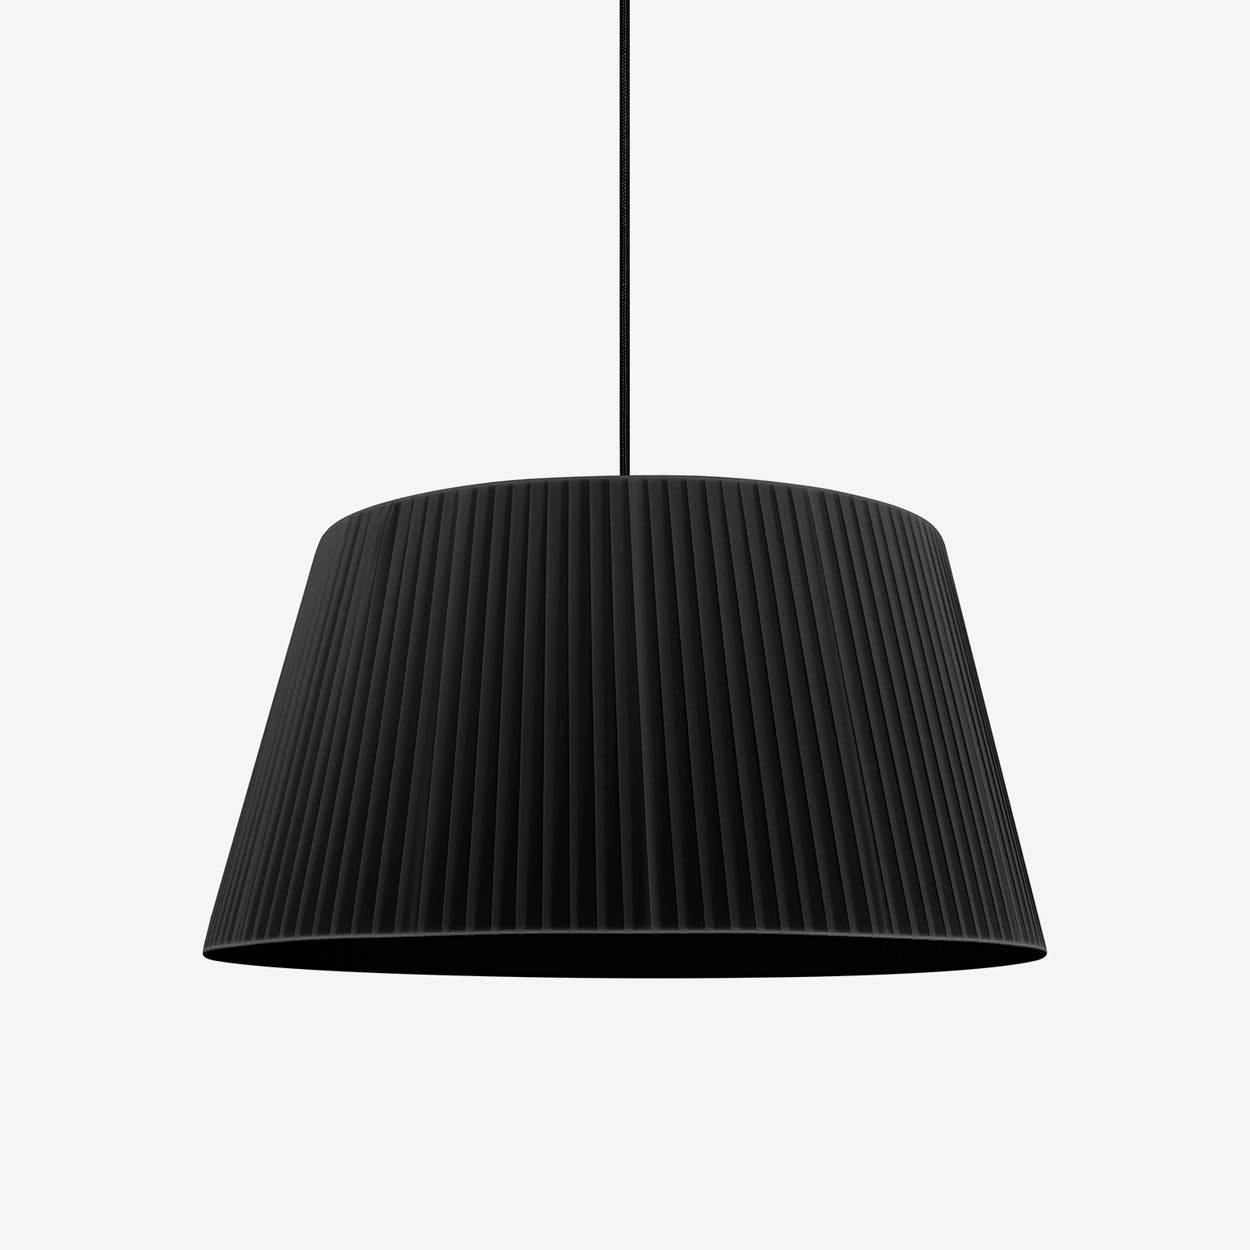 KAMI Single Pendant Light in Black